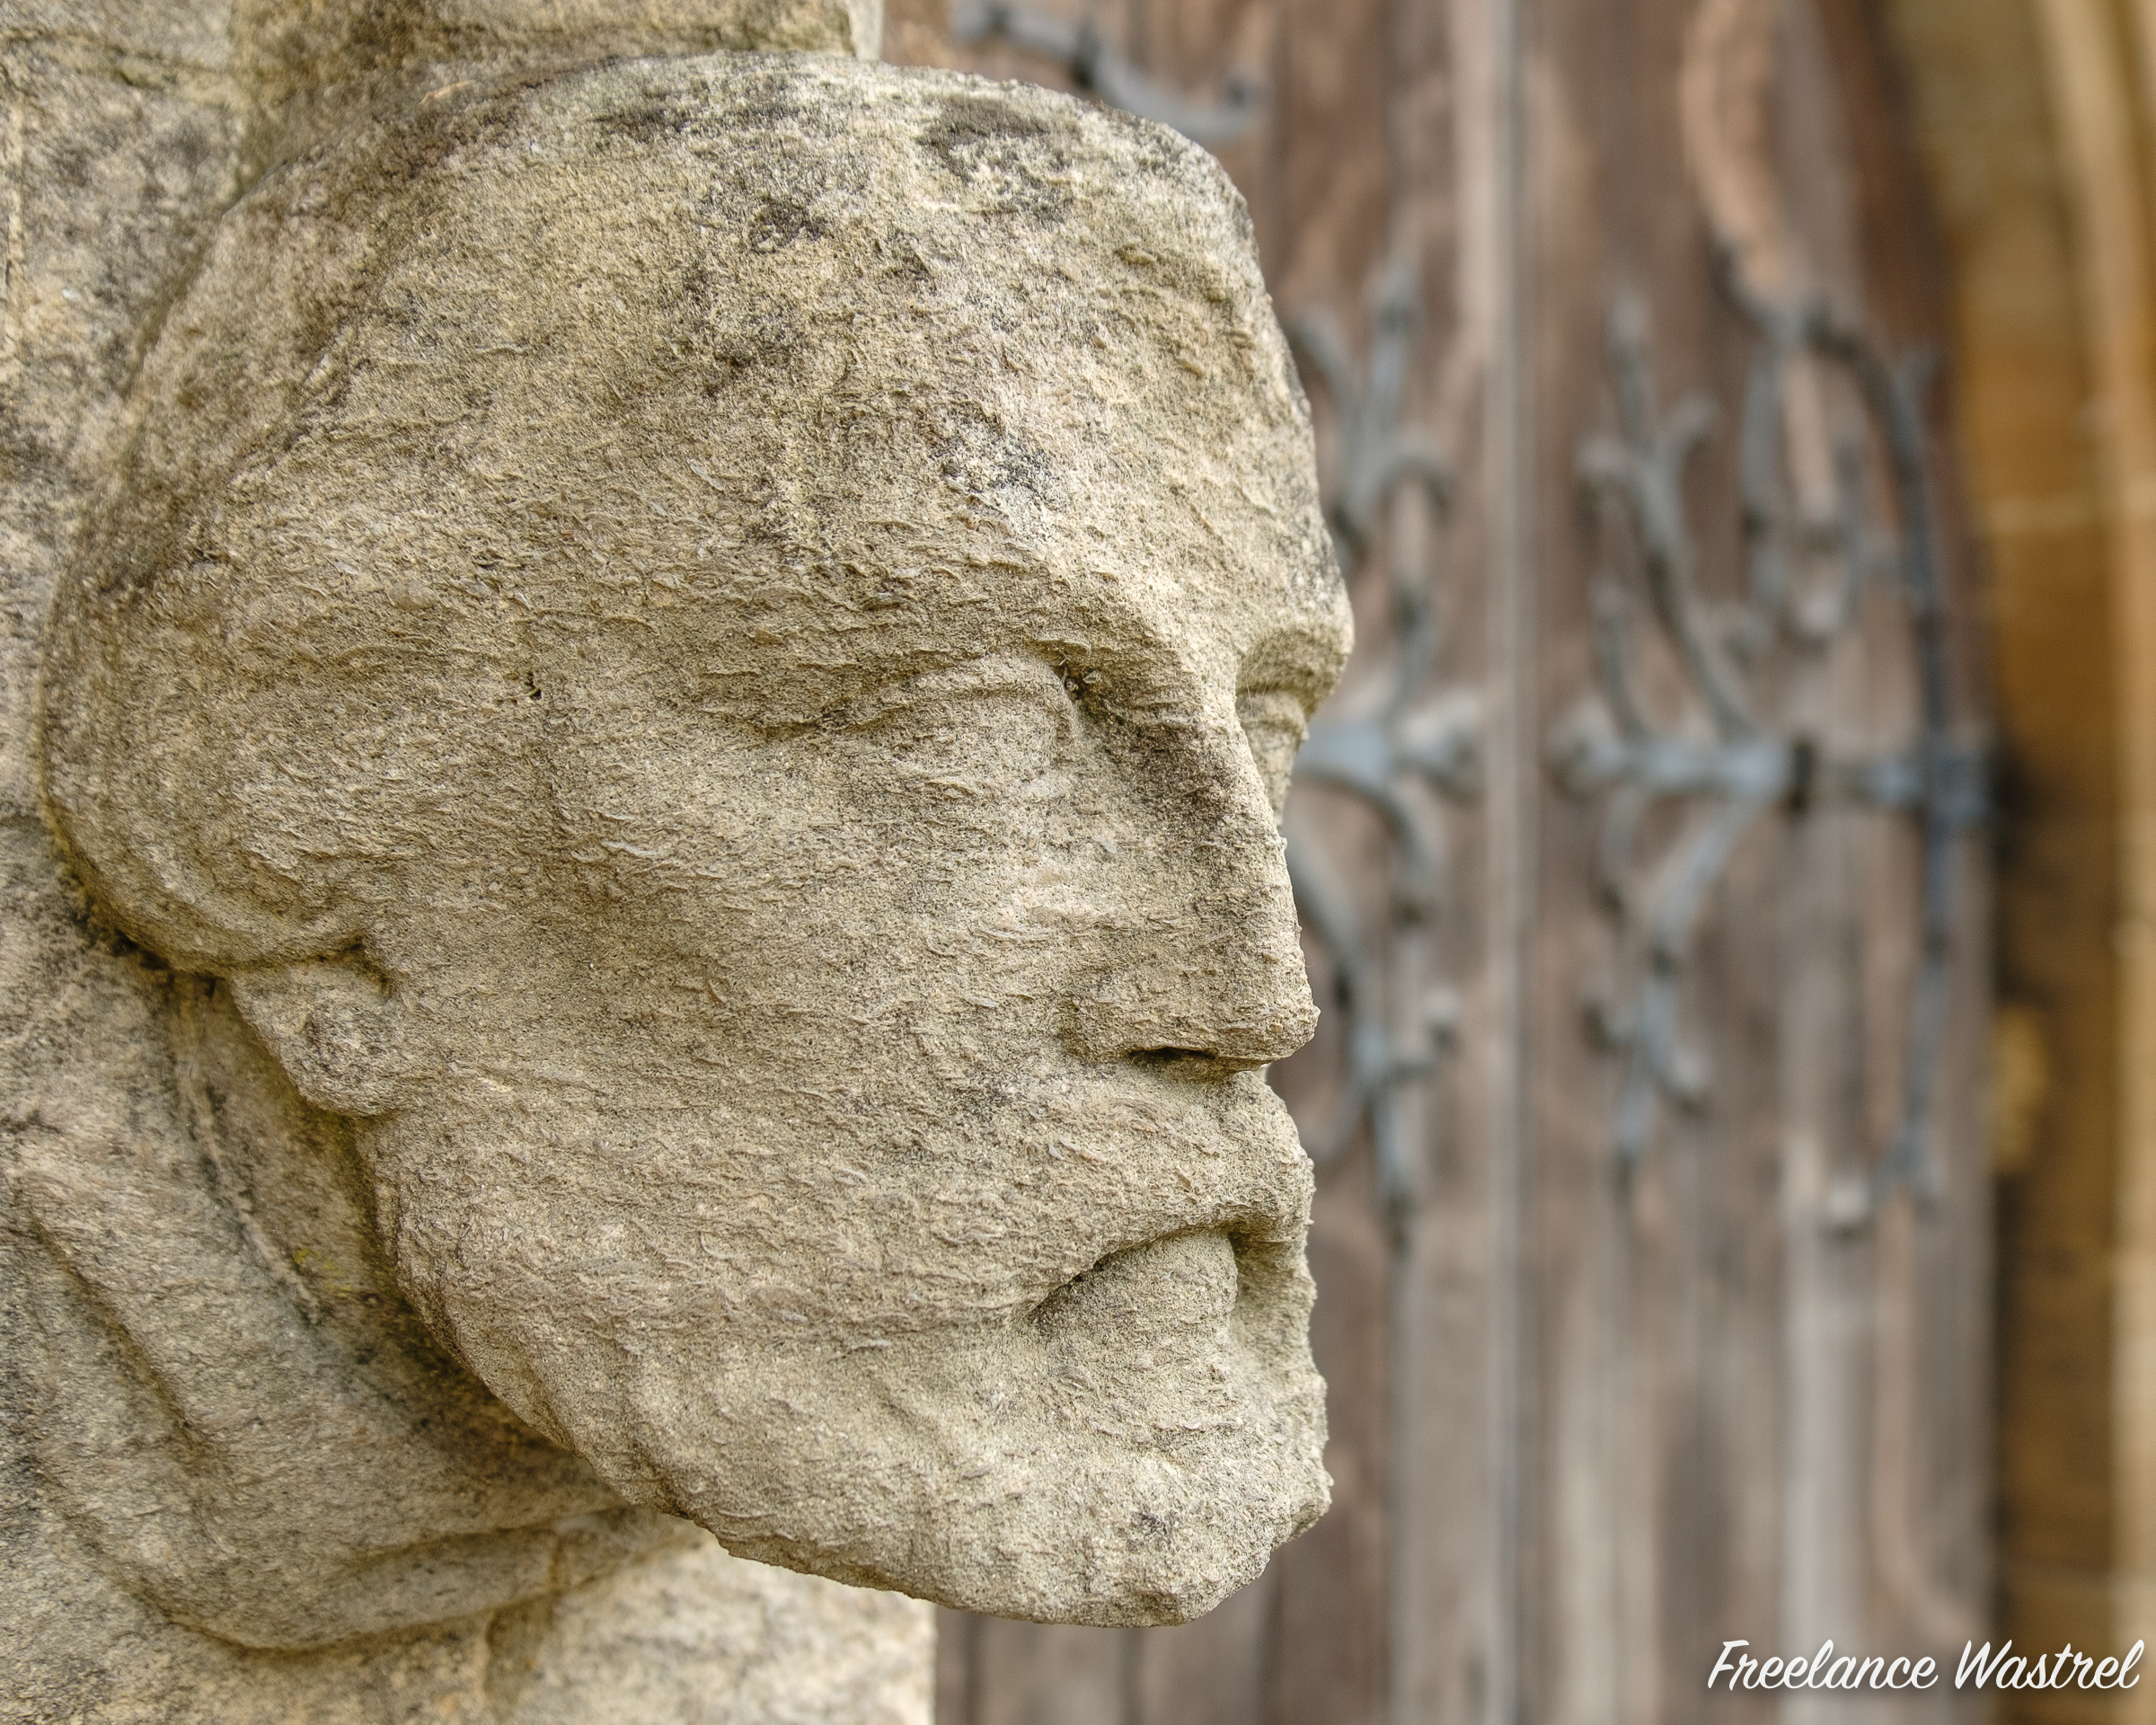 Stone face, Arundel Cathedral